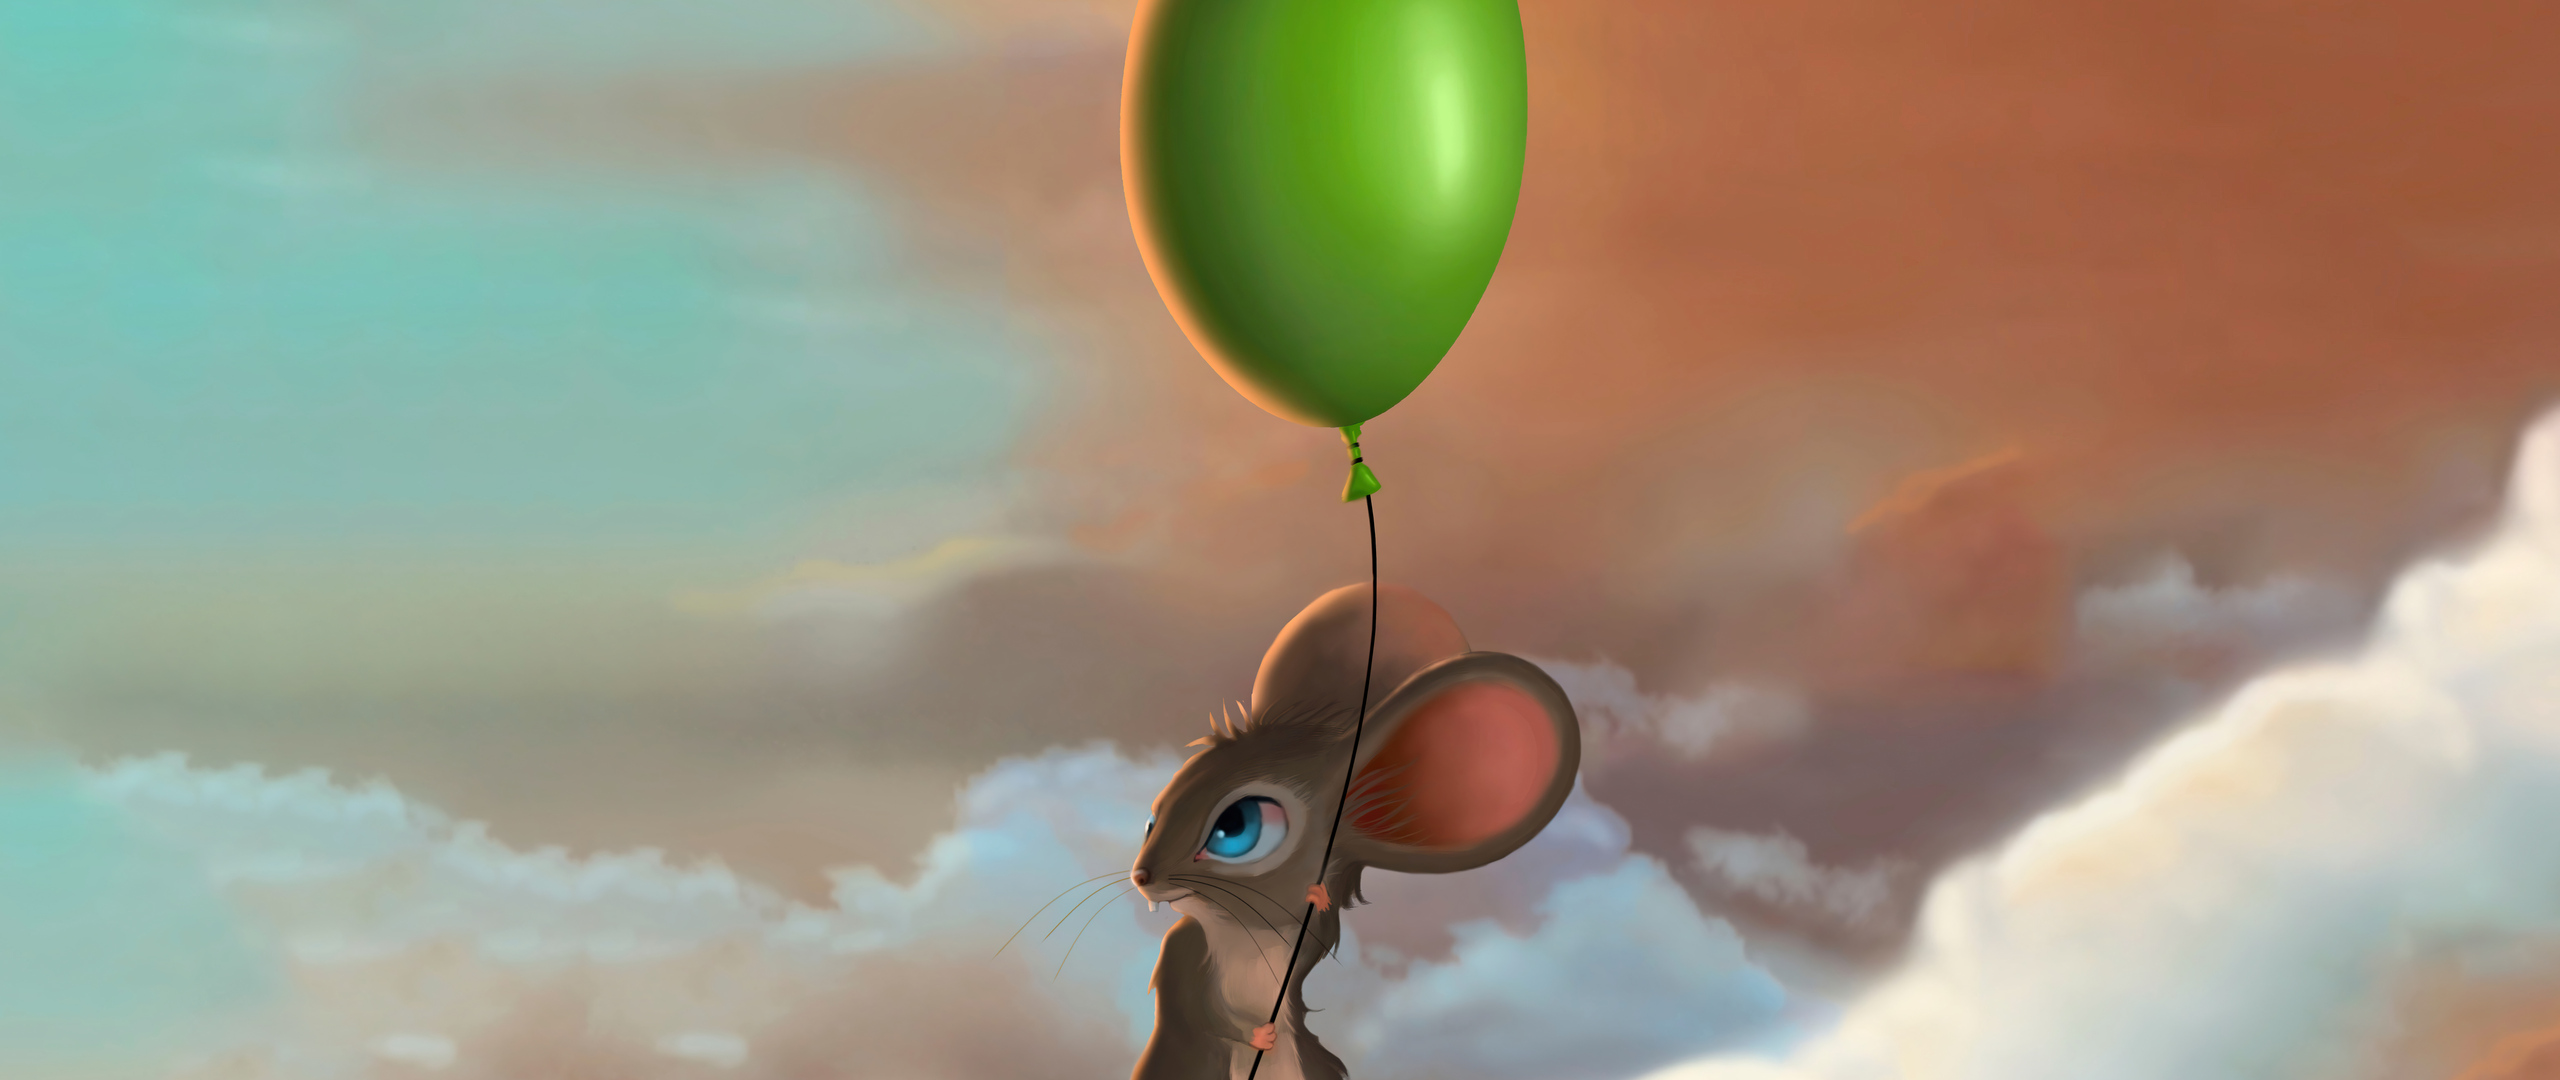 mouse-balloon-flying-5k-ay.jpg